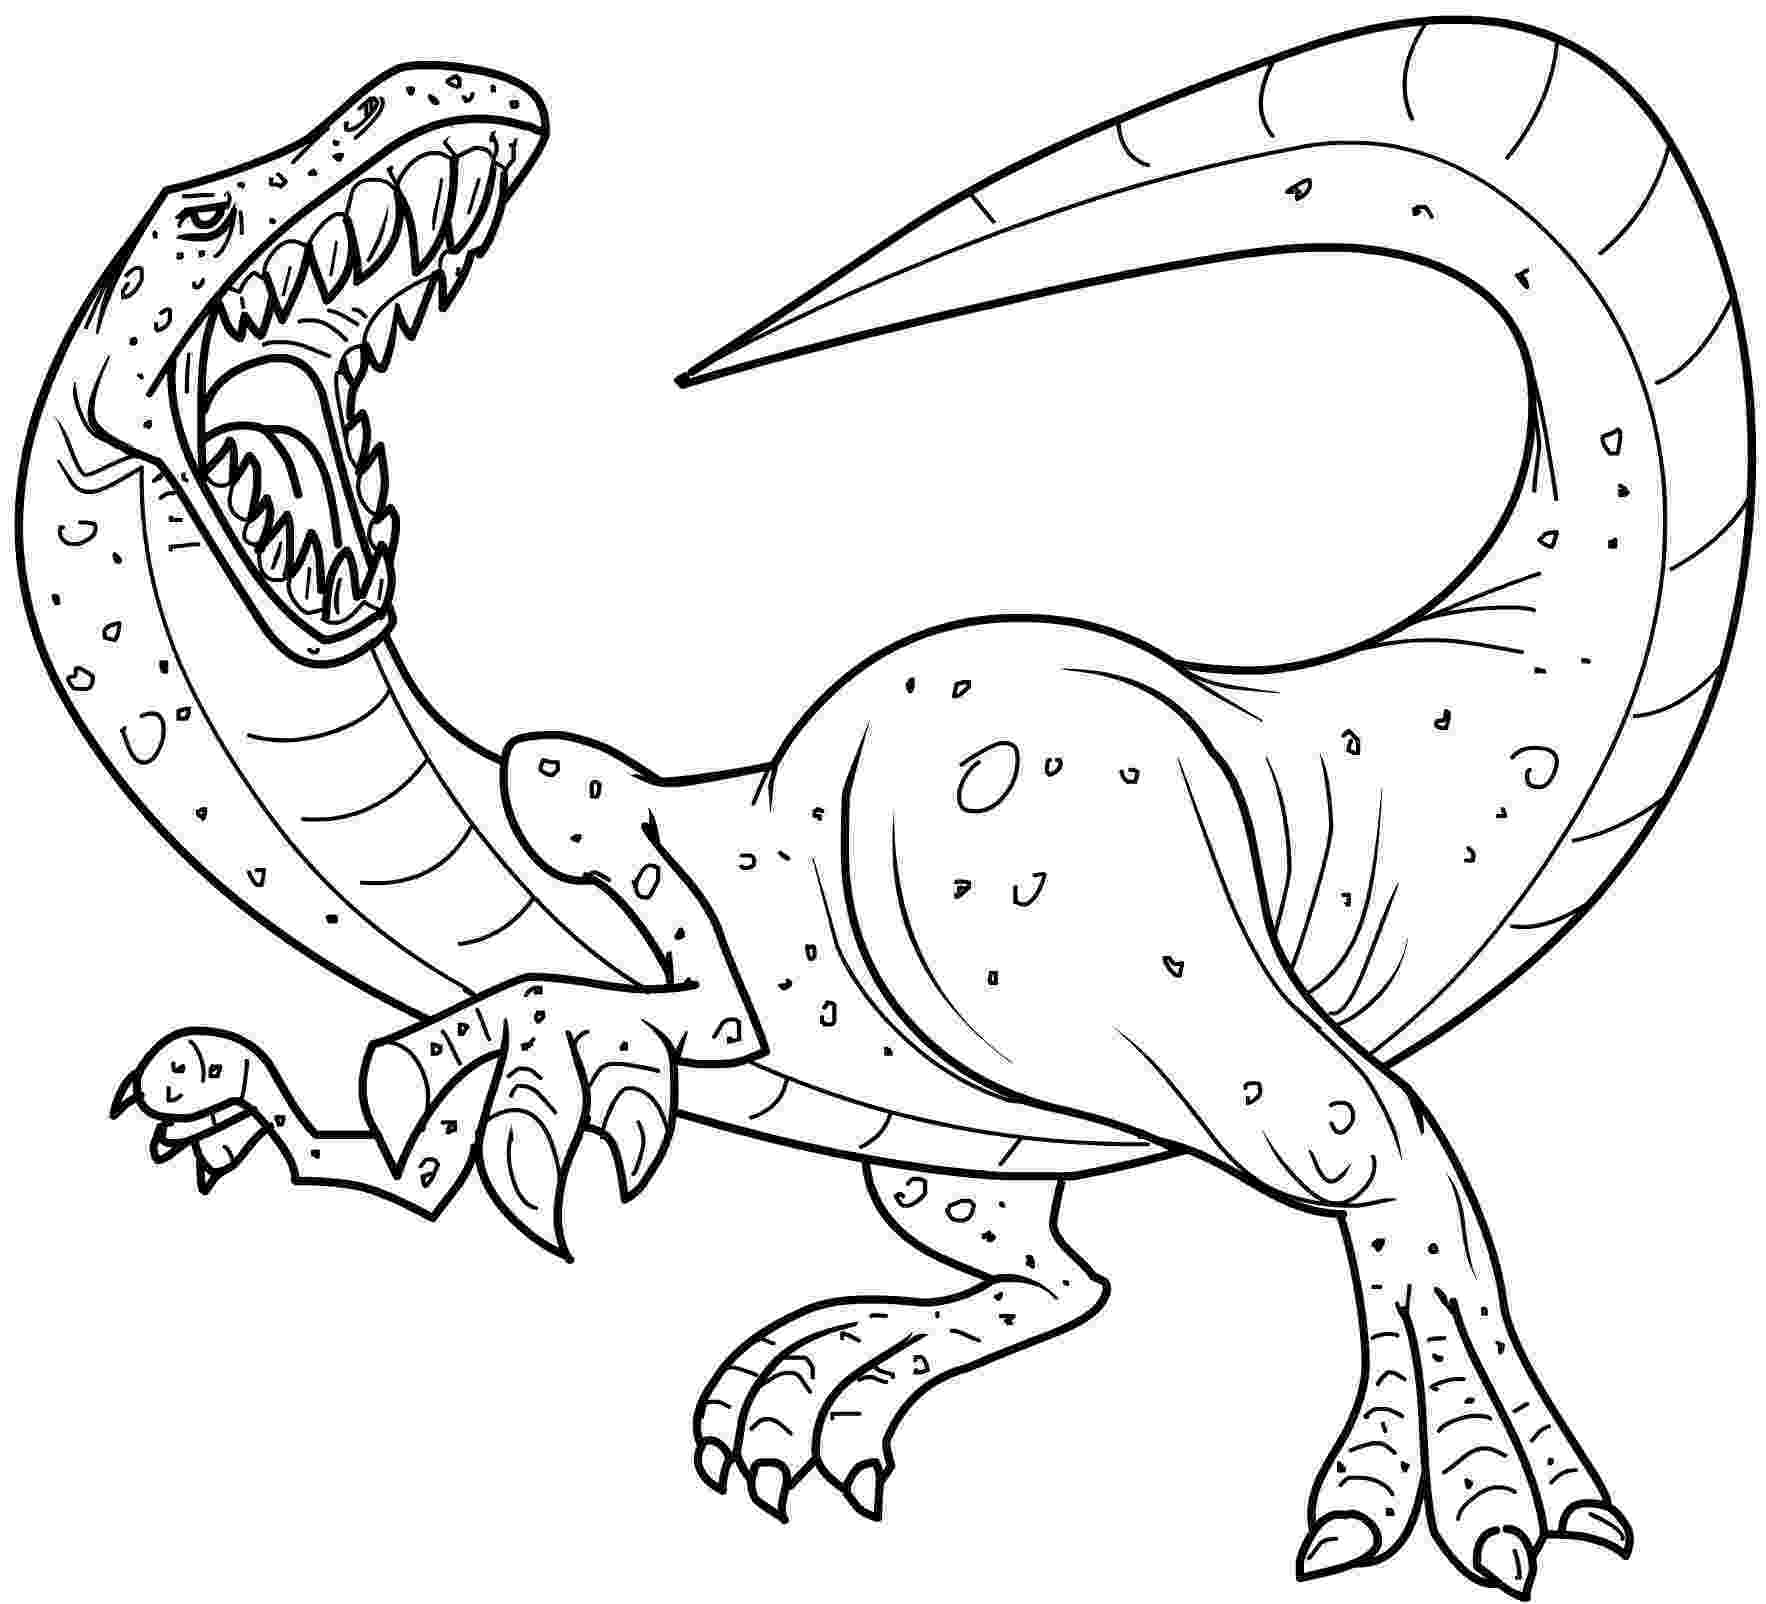 printable dinosaur pictures to color free printable triceratops coloring pages for kids dinosaur printable to color pictures